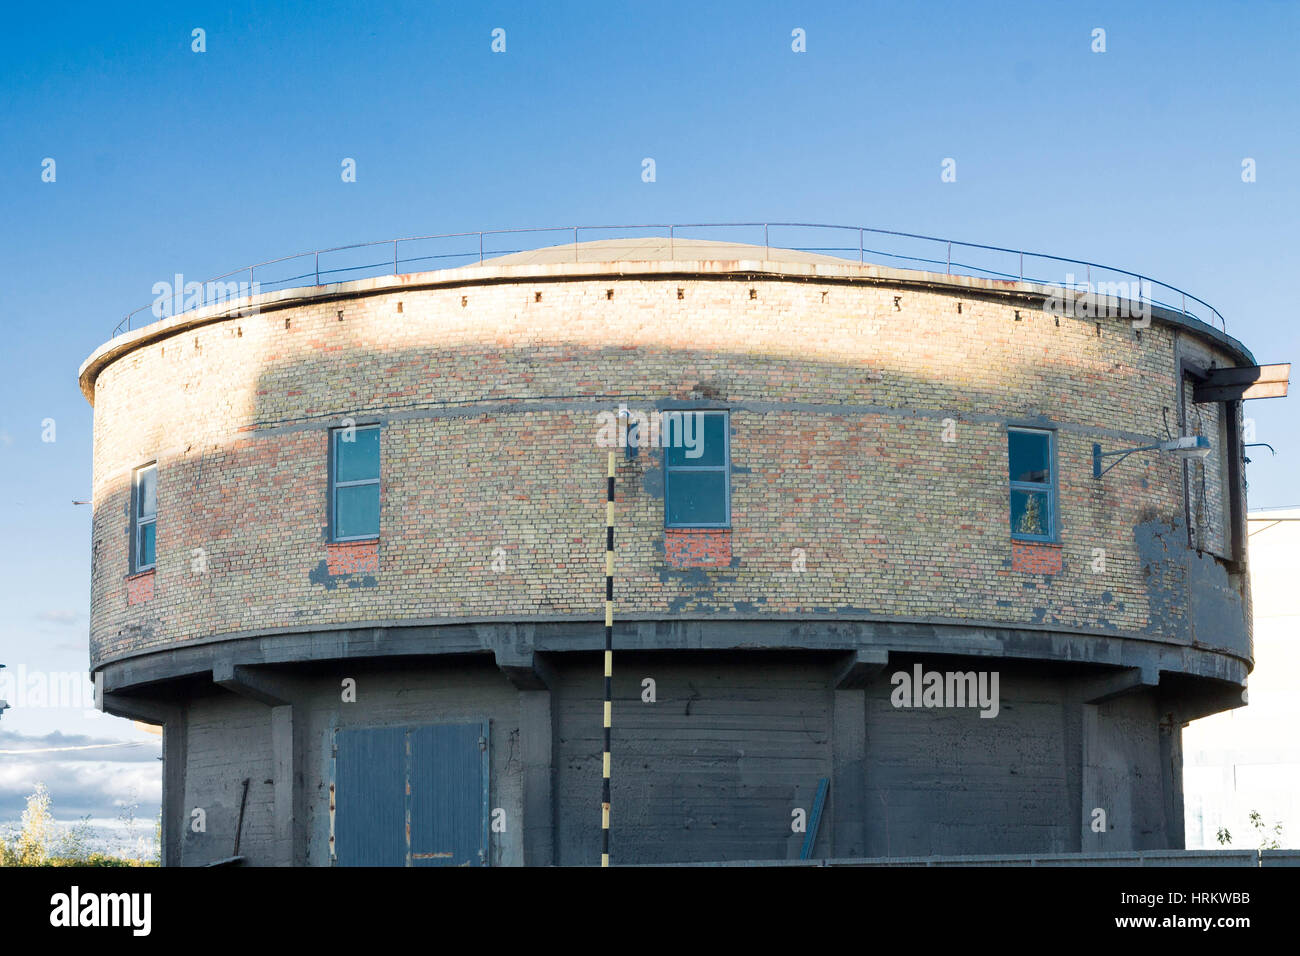 The building is round. The building is in the form of a mushroom. - Stock Image